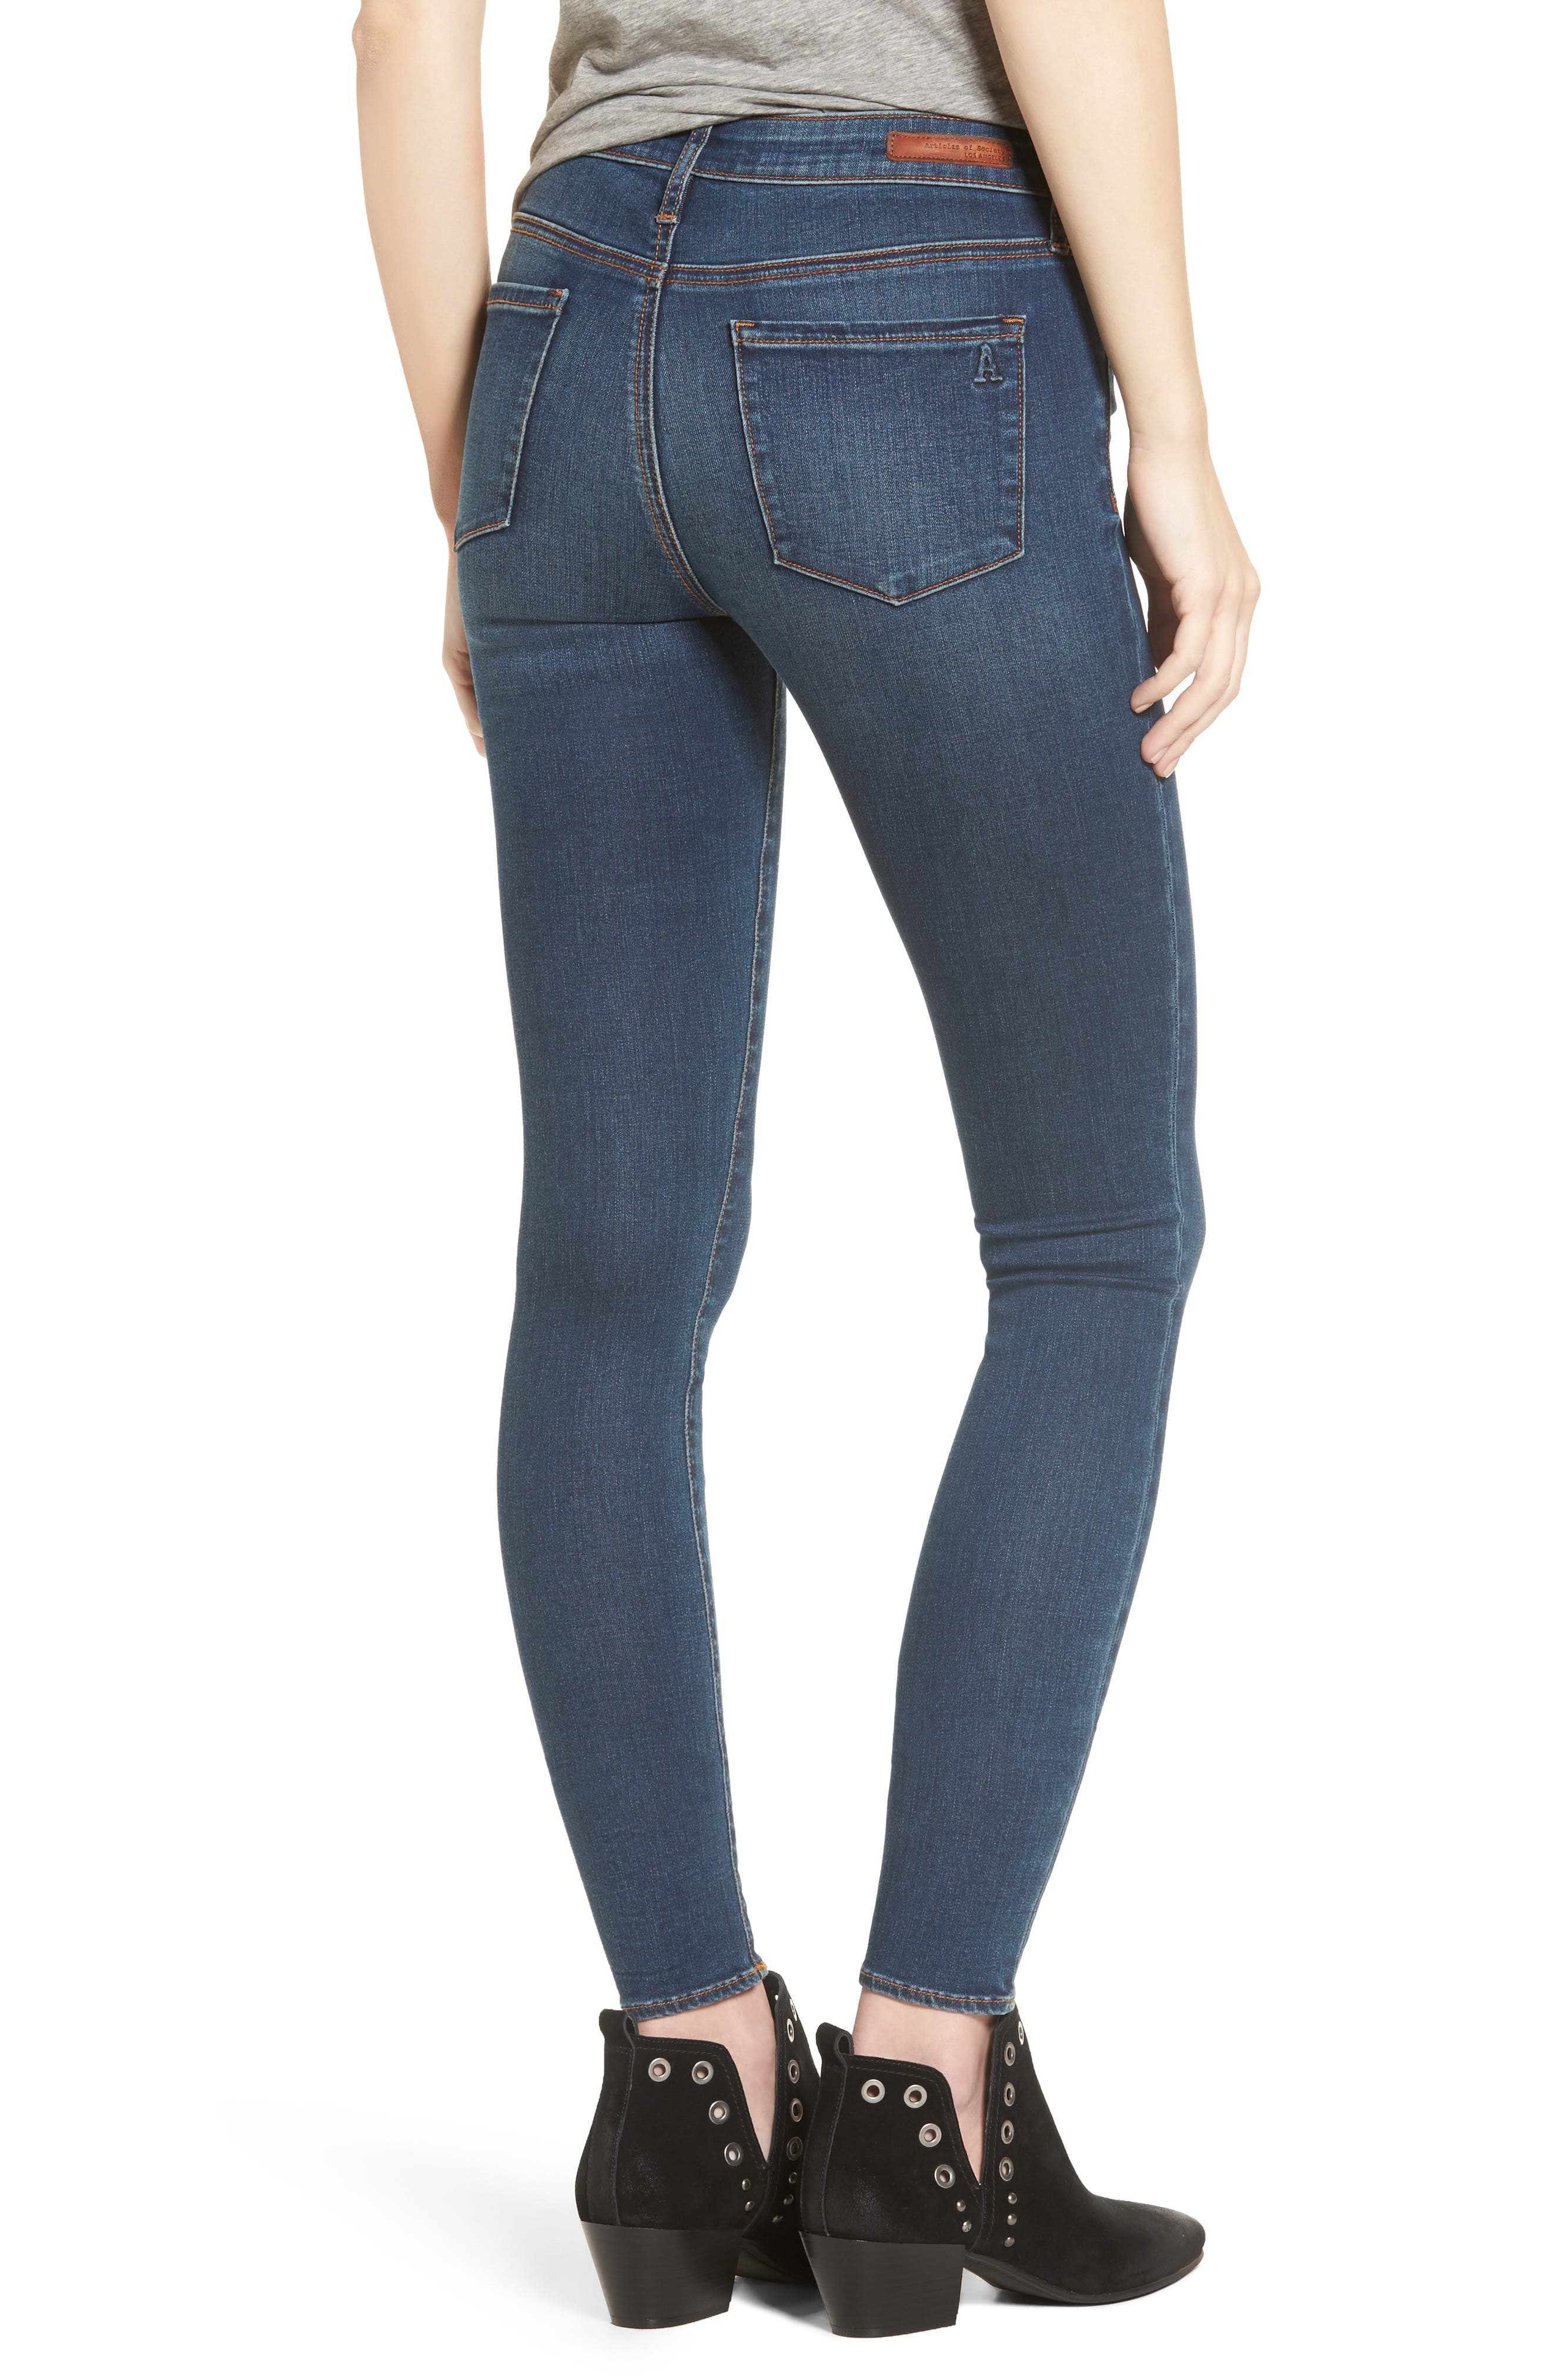 ARTICLES OF SOCIETY, Mya Skinny Jeans, Alternate thumbnail 2, color, 499